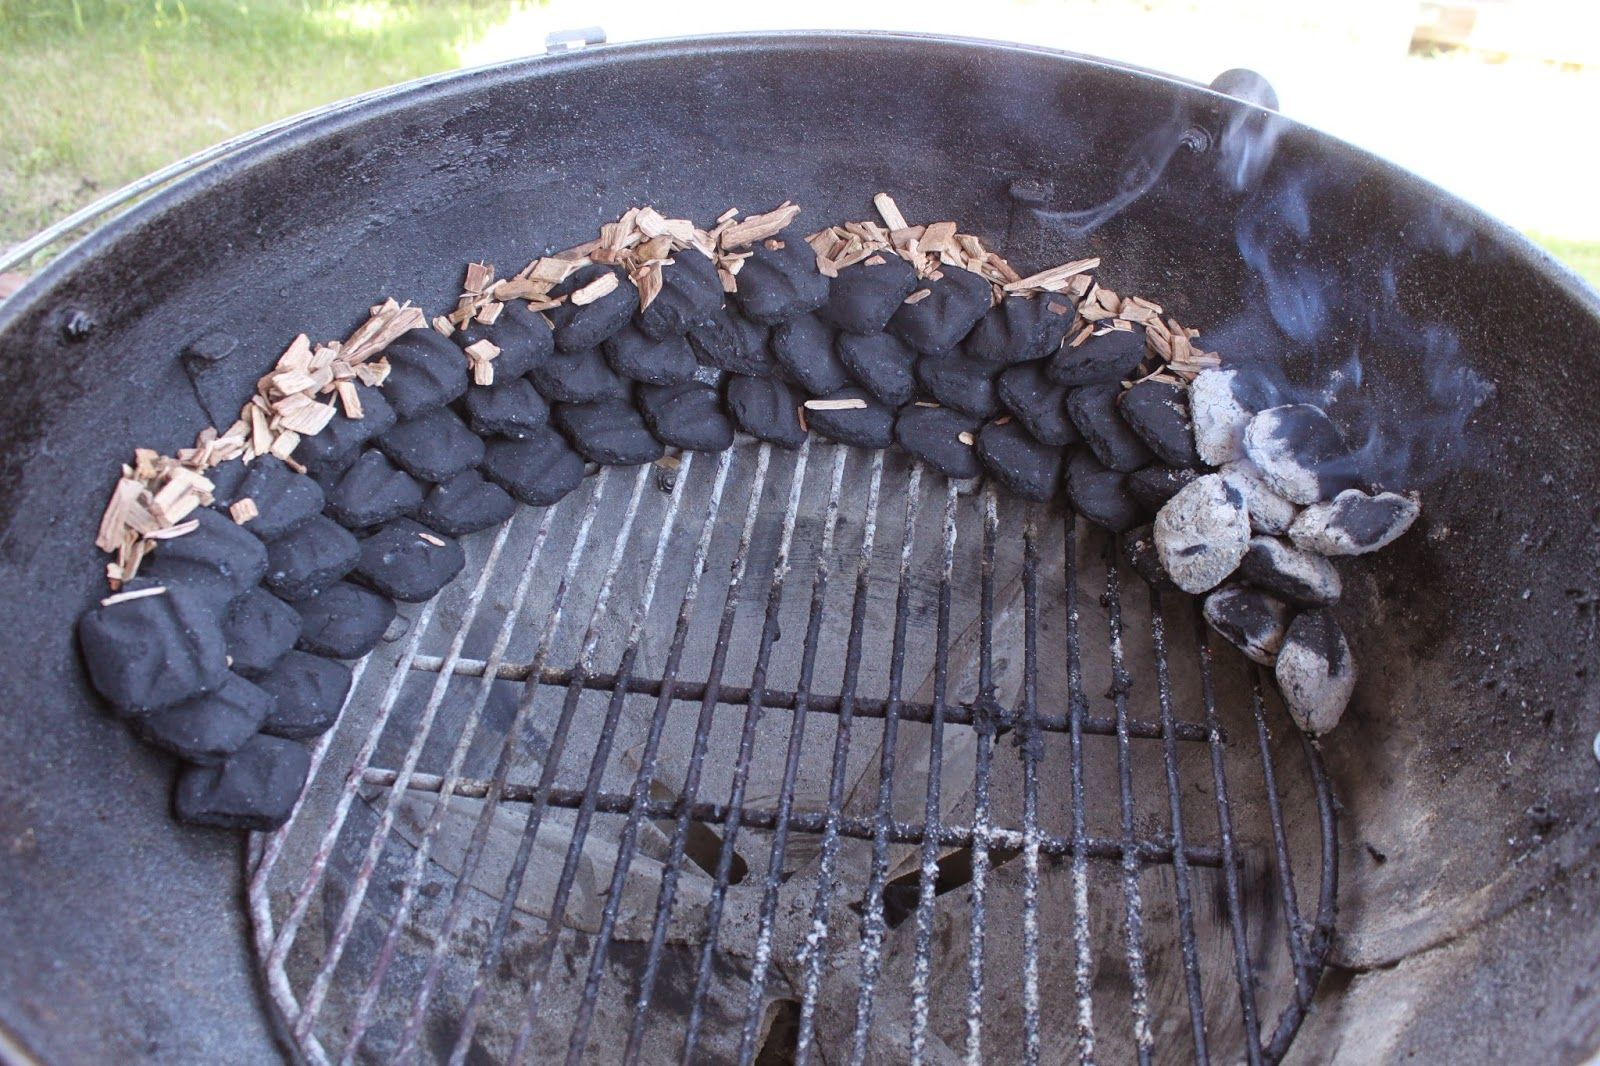 Gobluebbq indirect cooking on a charcoal grill smoke